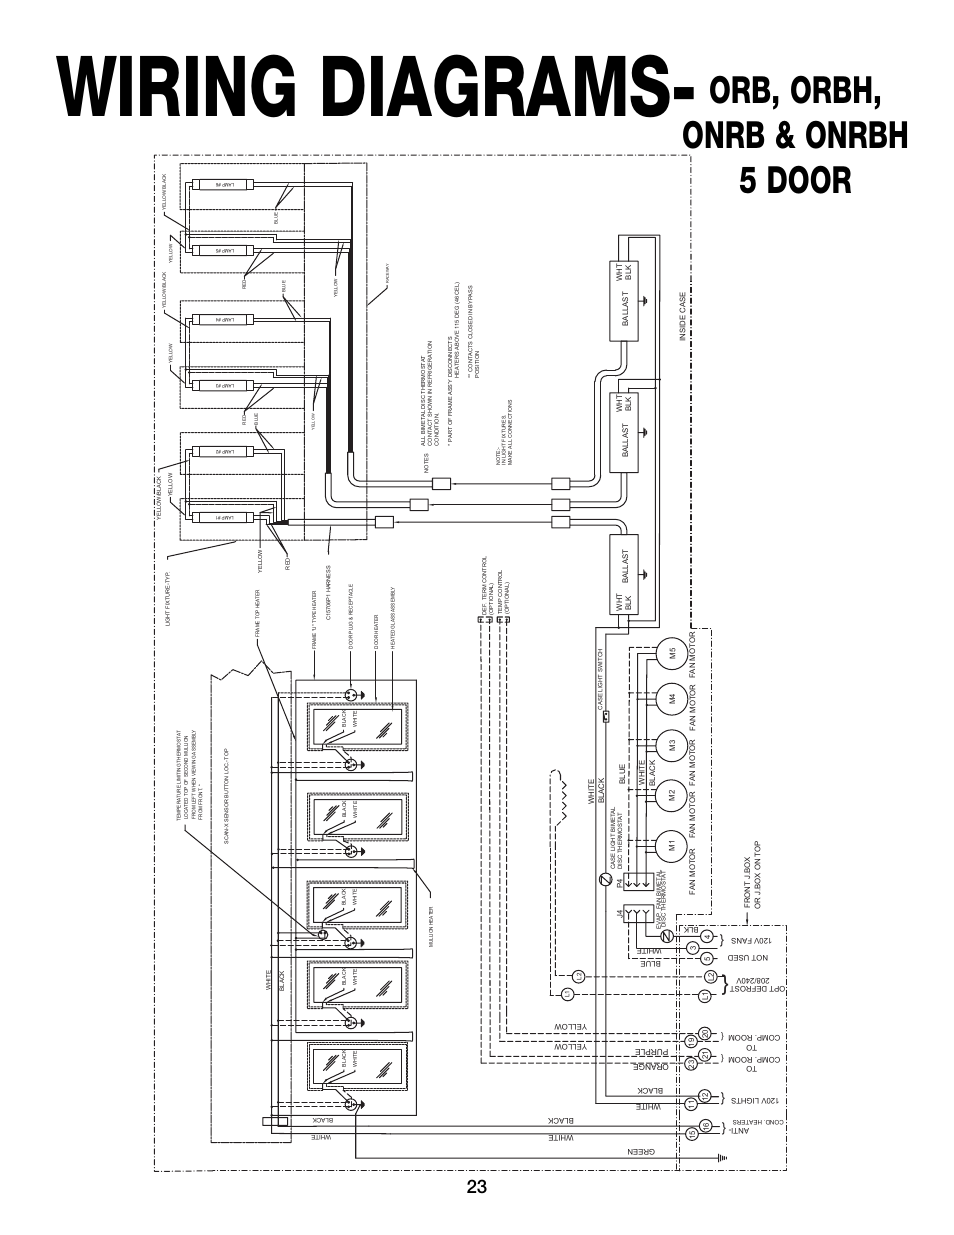 wiring diagrams  orb  orbh  onrb  u0026 onrbh 5 door